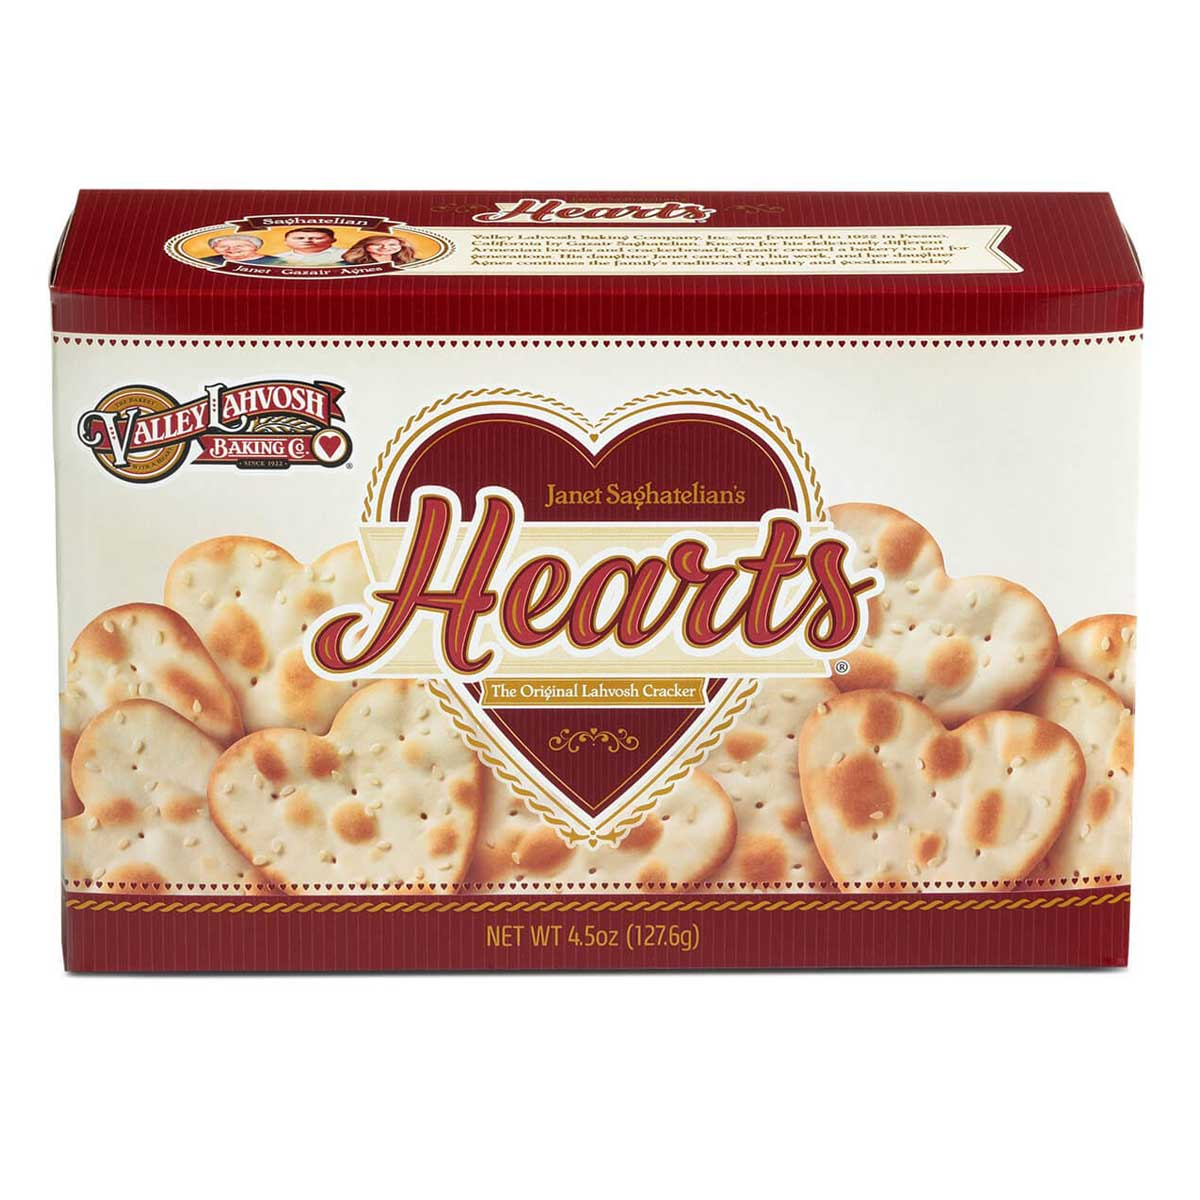 image of hearts crackers